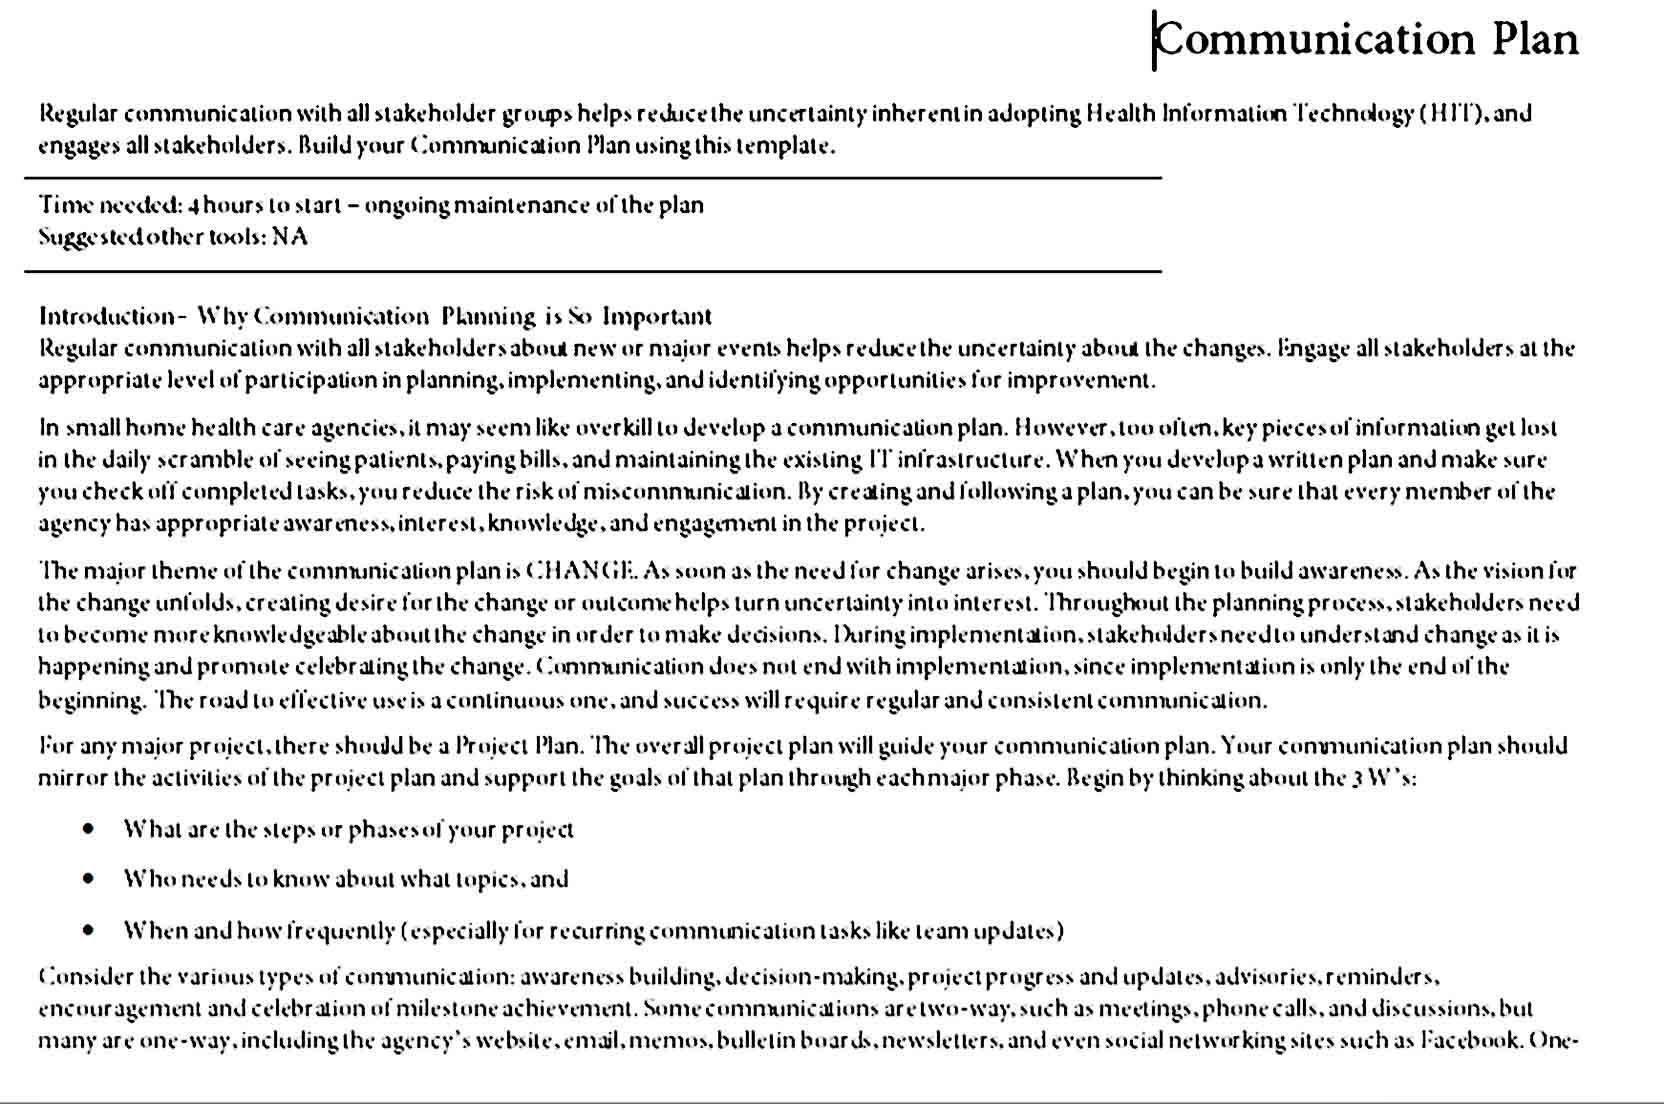 Communication Plan Template 02